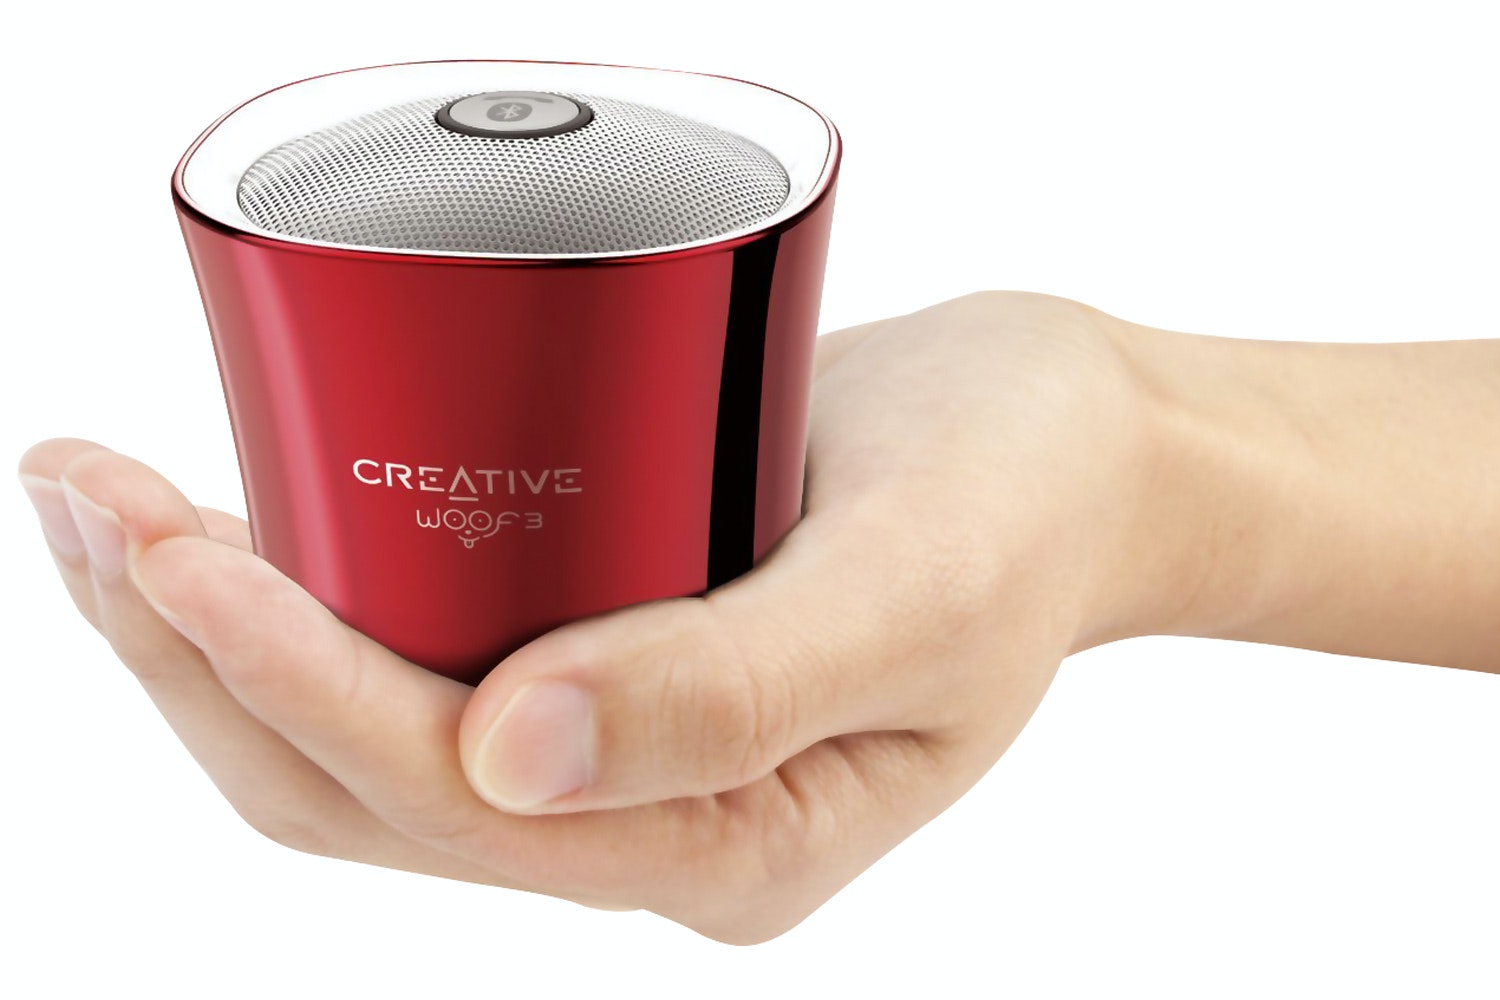 Creative Woof 3 Portable Wireless Bluetooth Speaker | Red